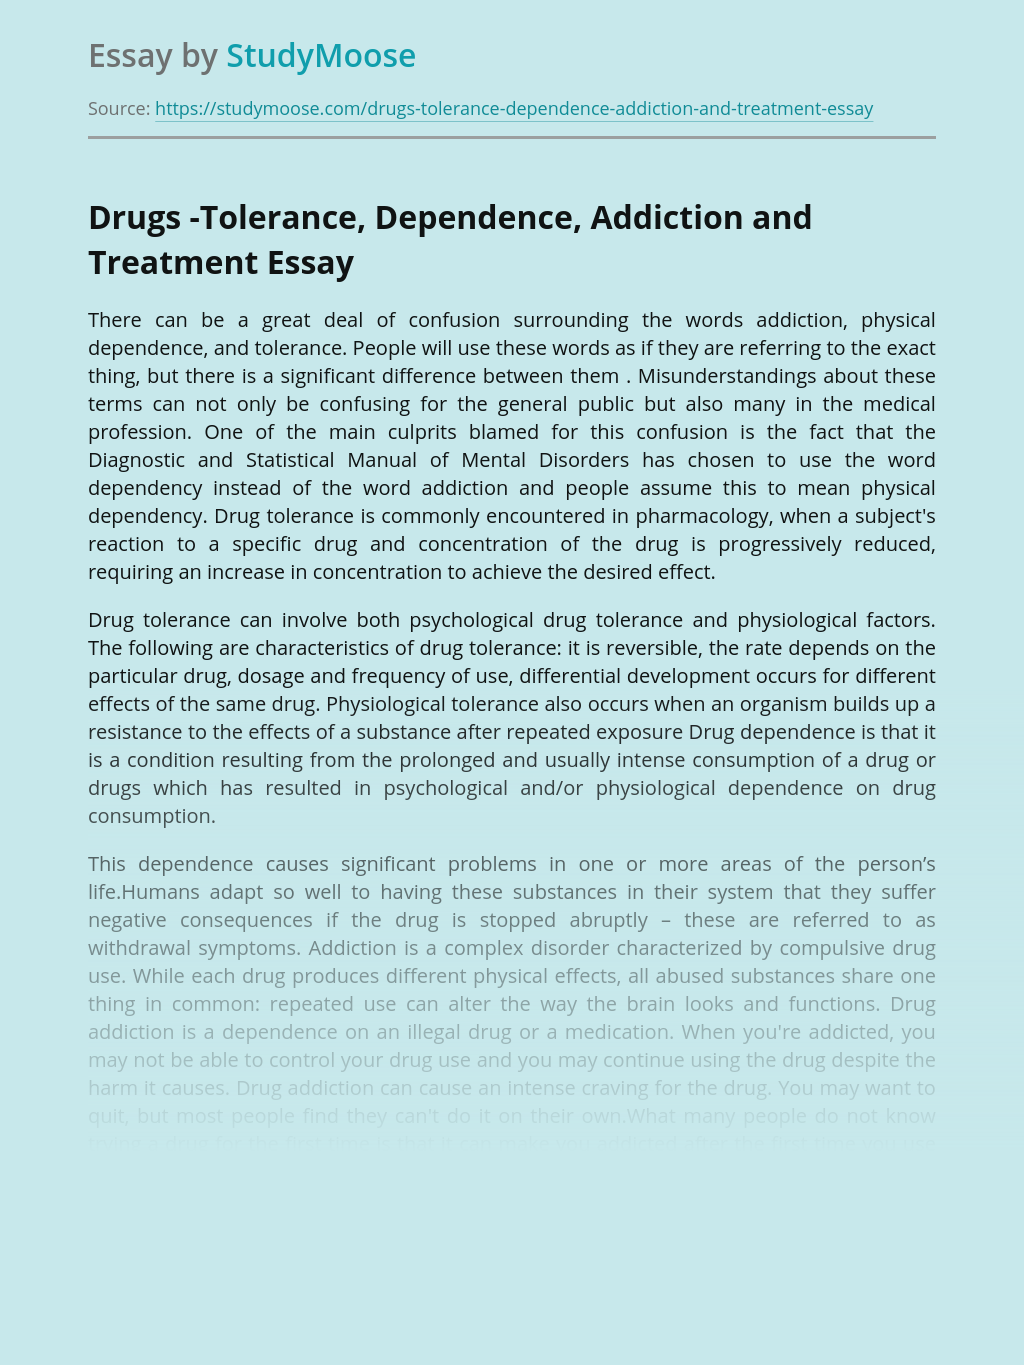 Drugs -Tolerance, Dependence, Addiction and Treatment